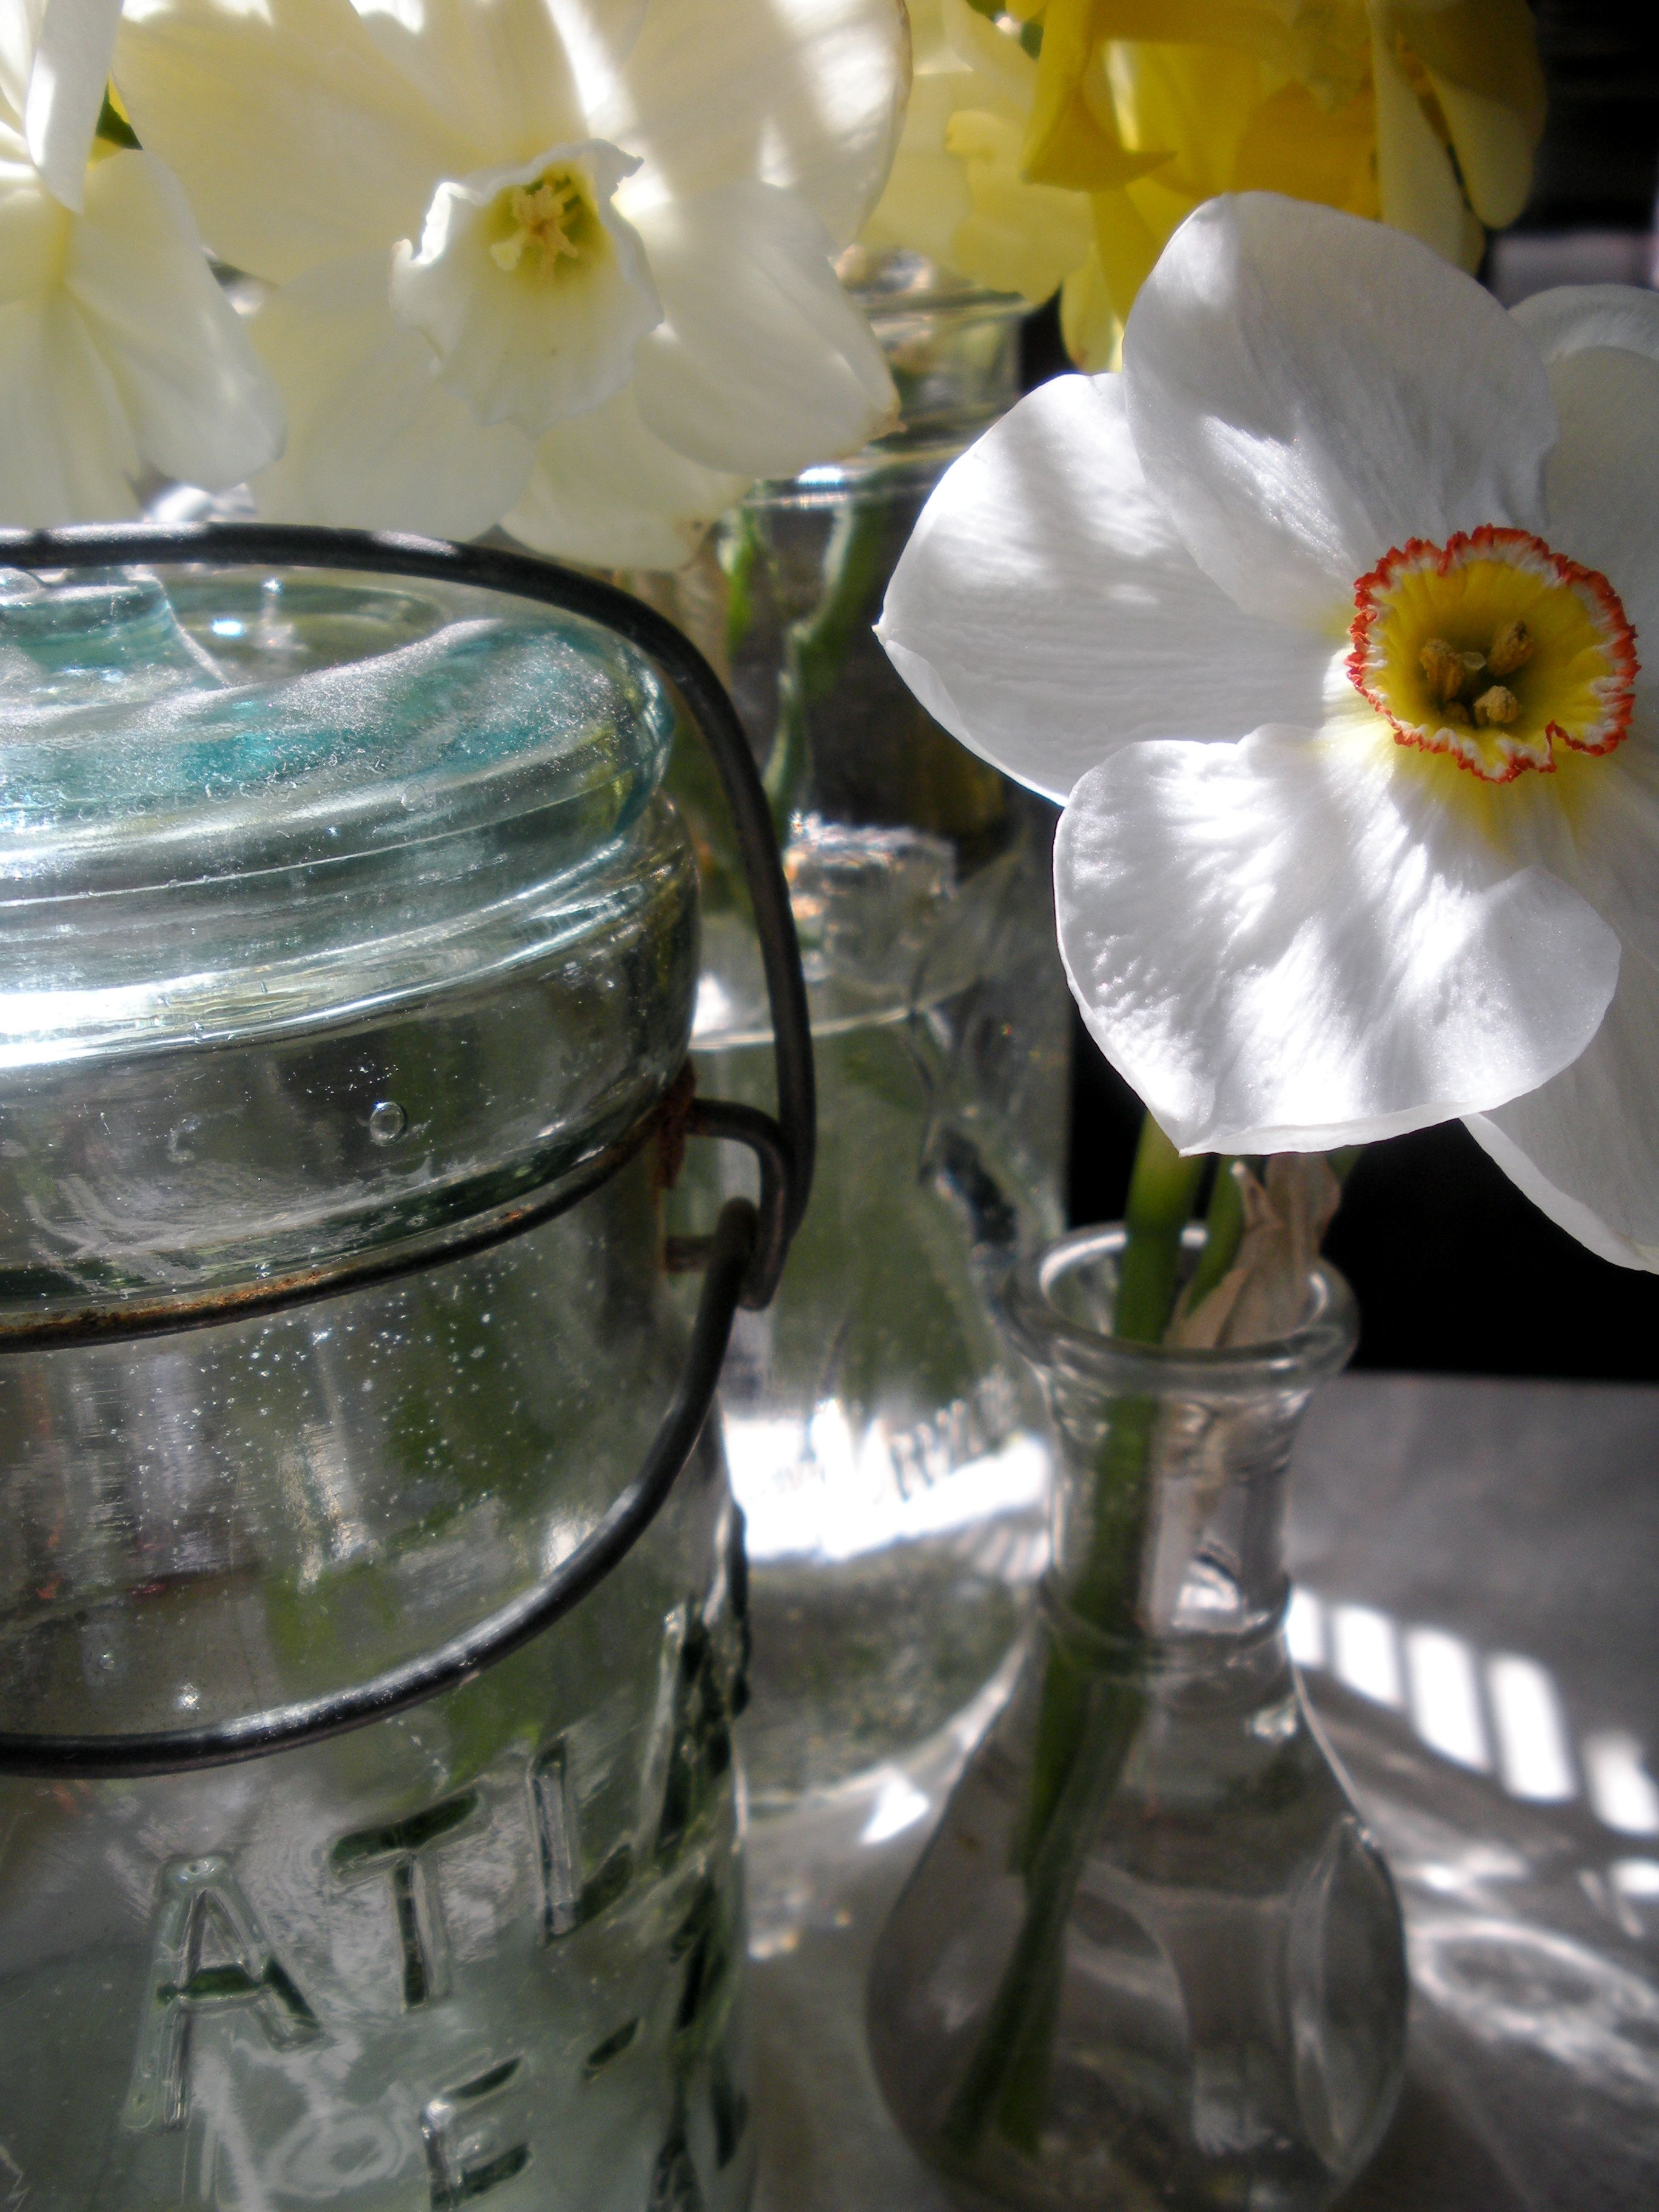 some eye candy and inspiration at my desk. #daffodils #masonjars #drool #imayhaveaproblem